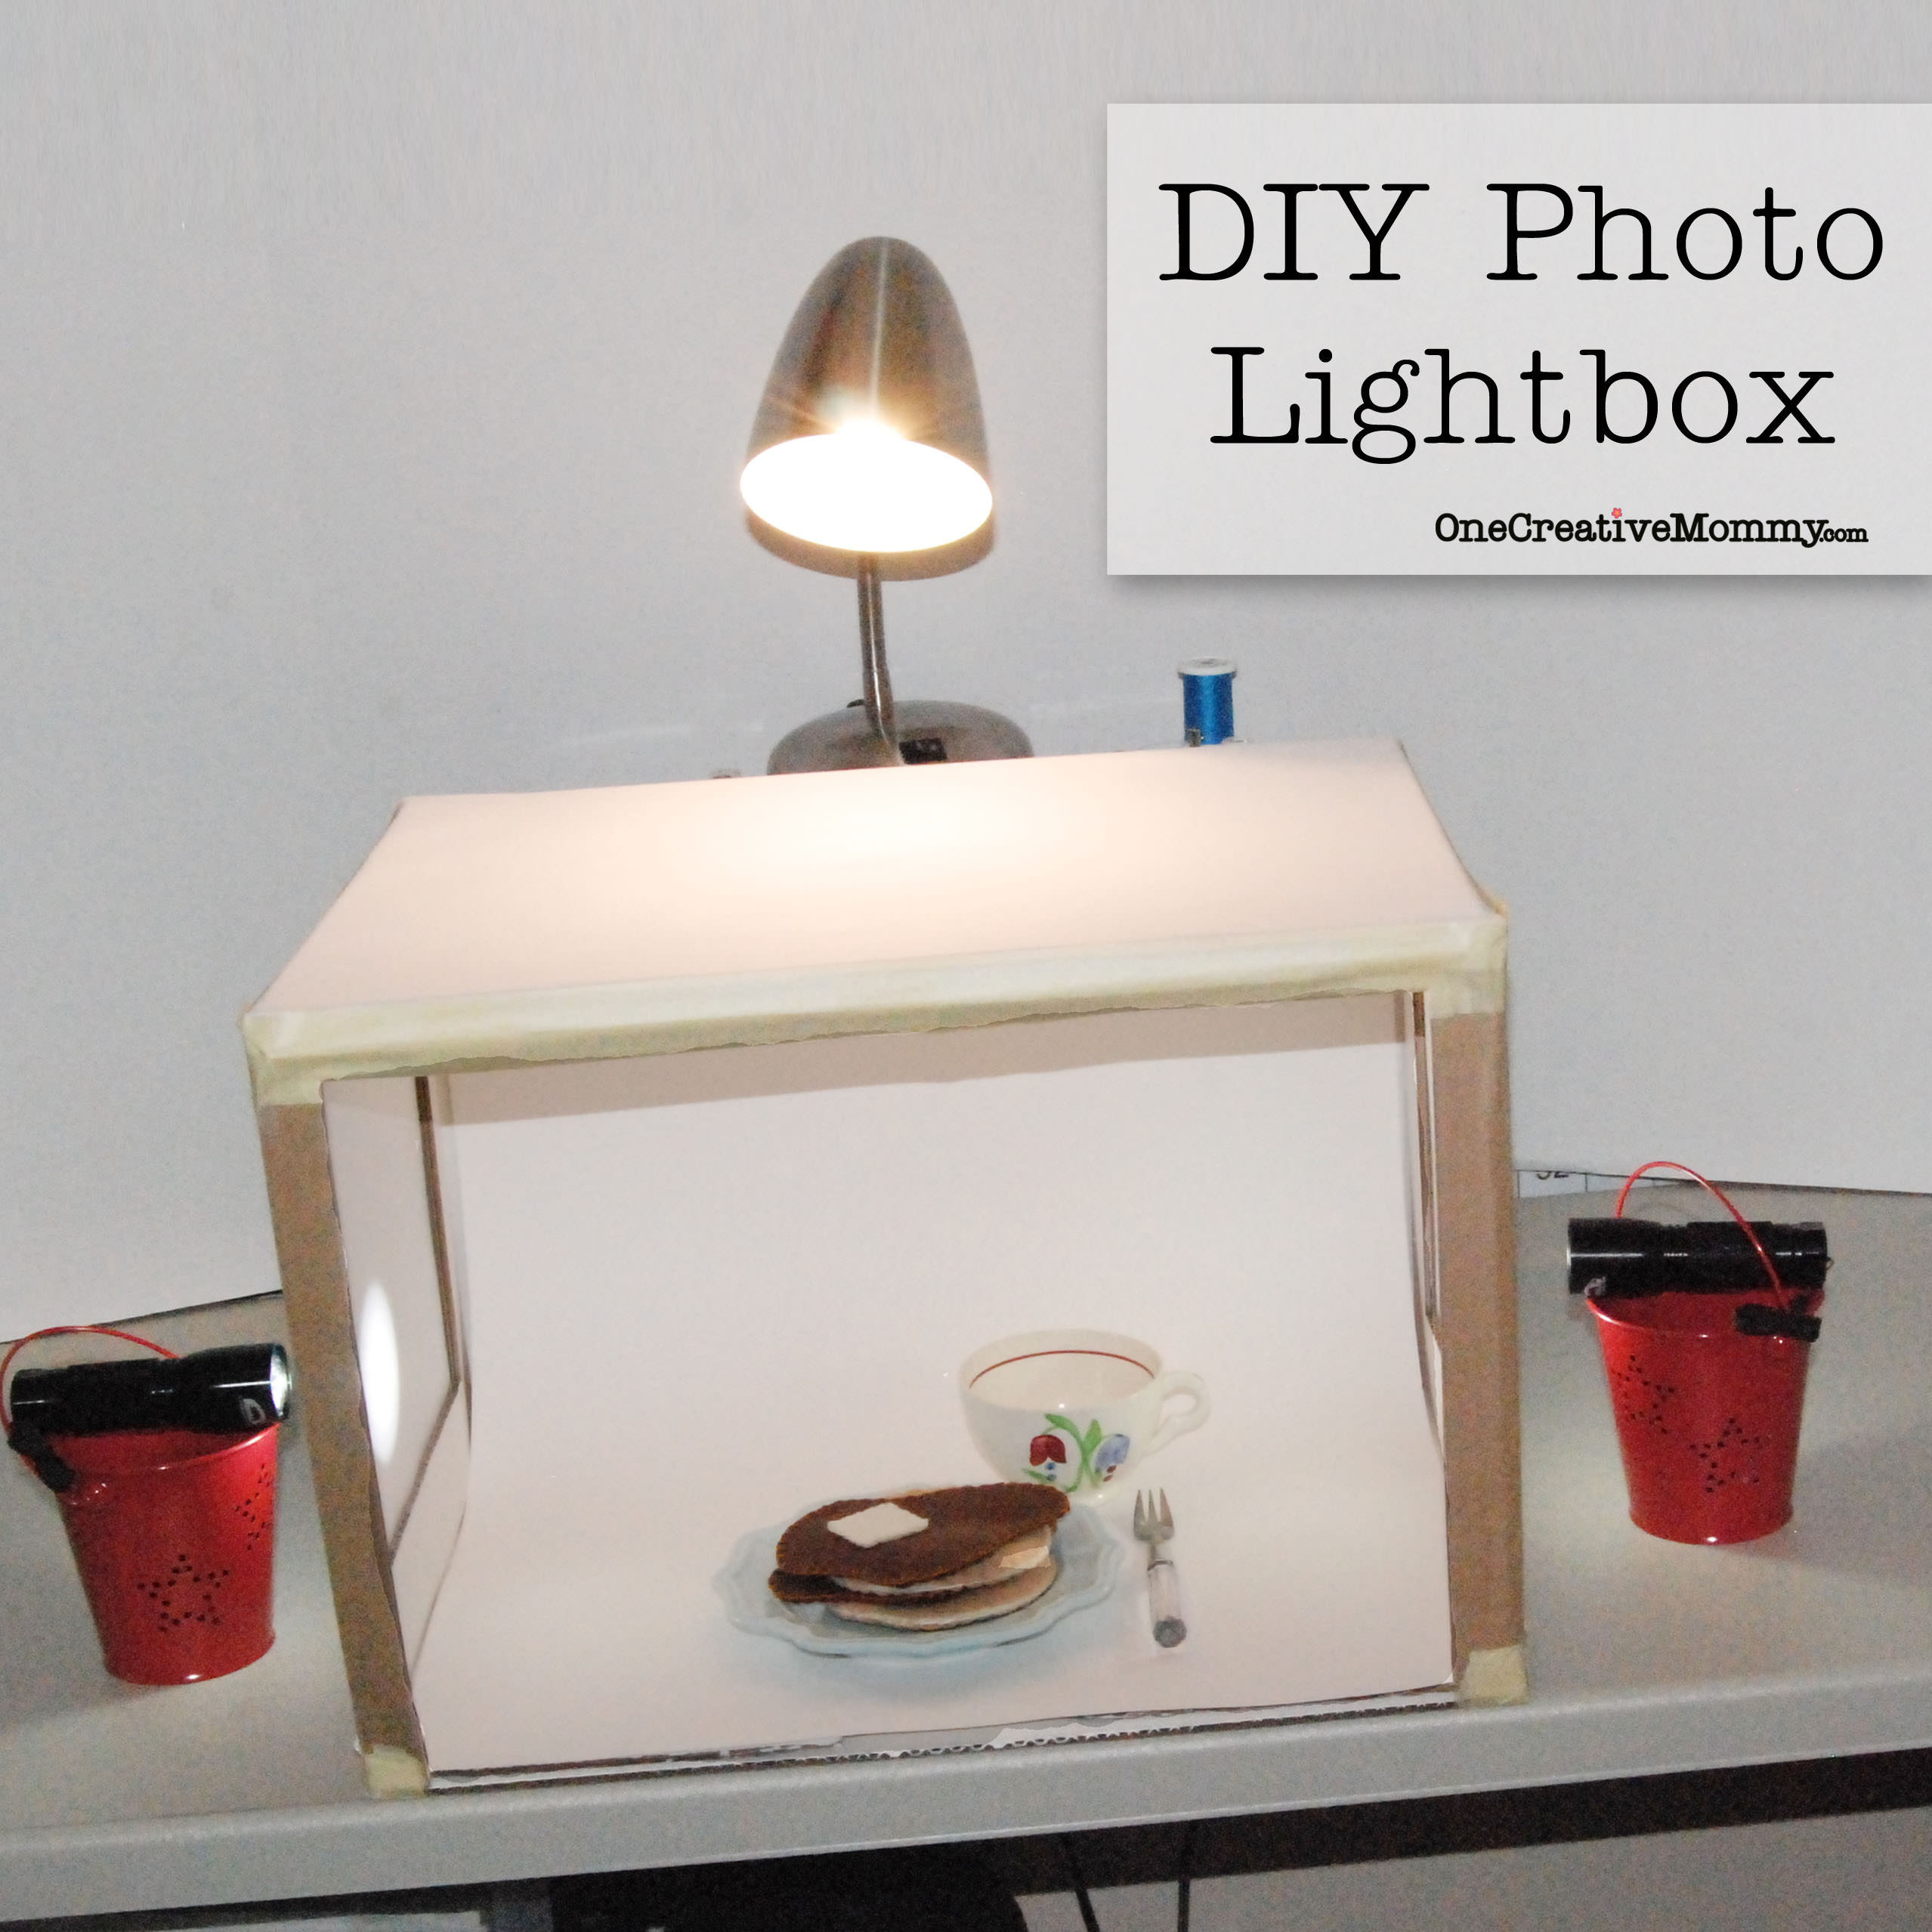 DIY Light Box Photography  Grow Your Blog Series DIY Lightbox onecreativemommy